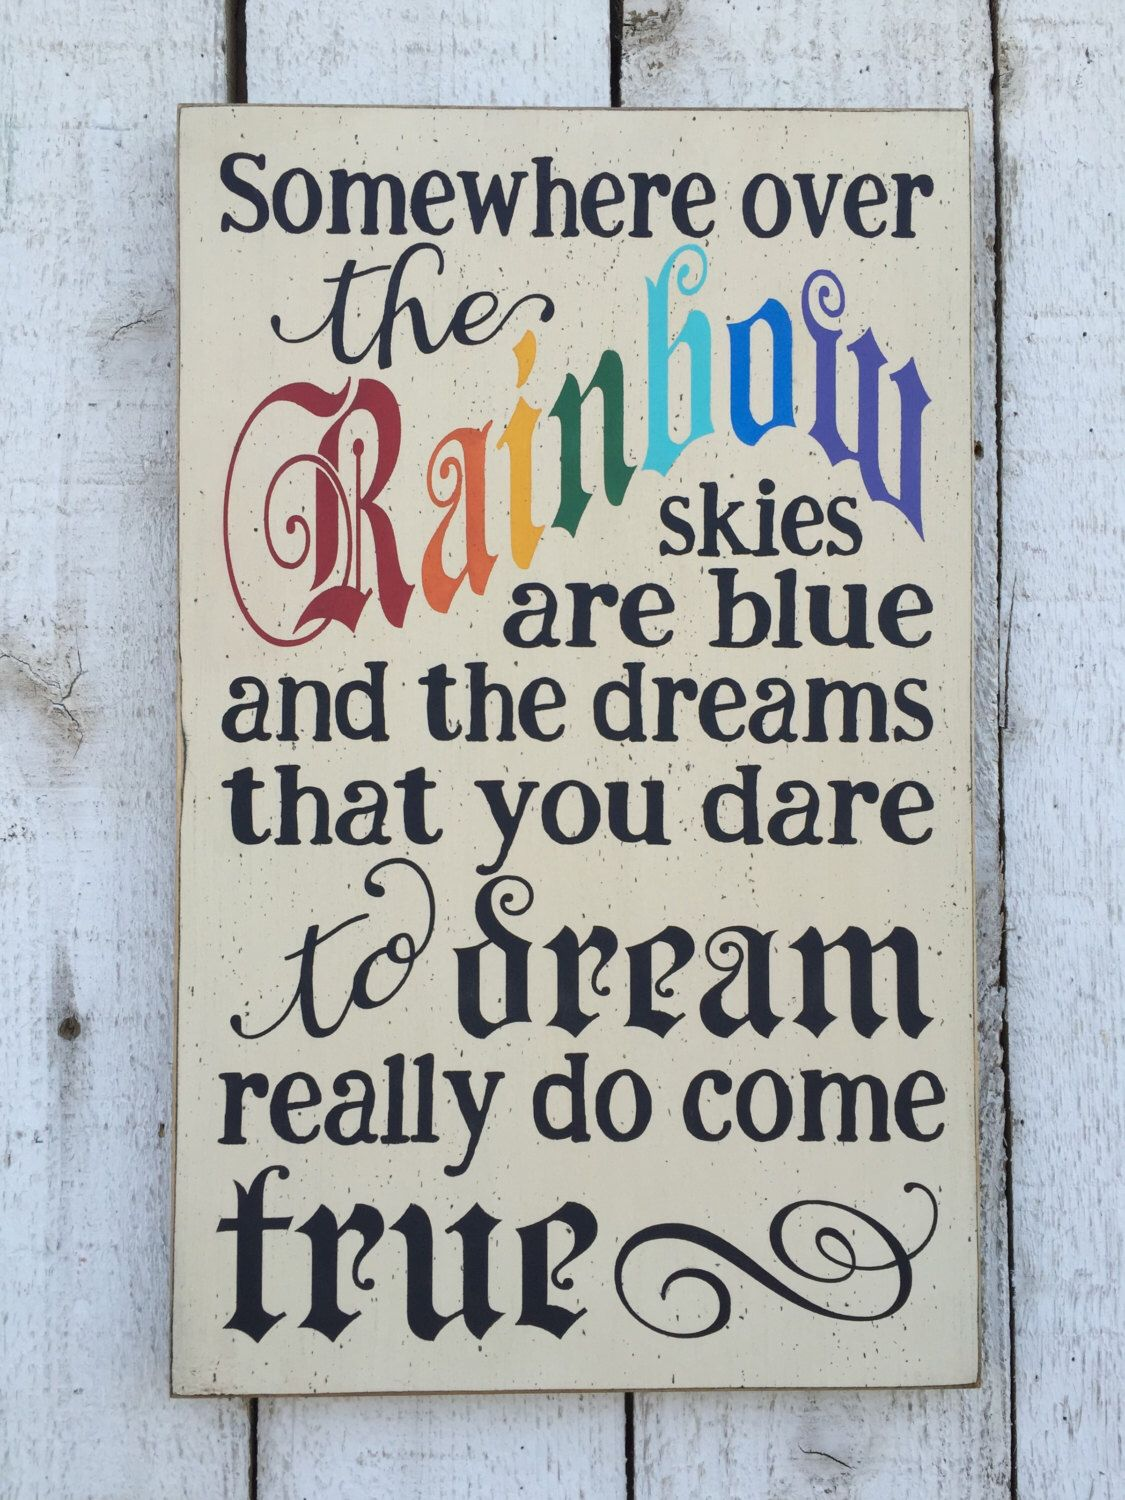 Somewhere over the rainbow - hand painted distressed rustic wood - Wizard Of Oz Halloween Decorations